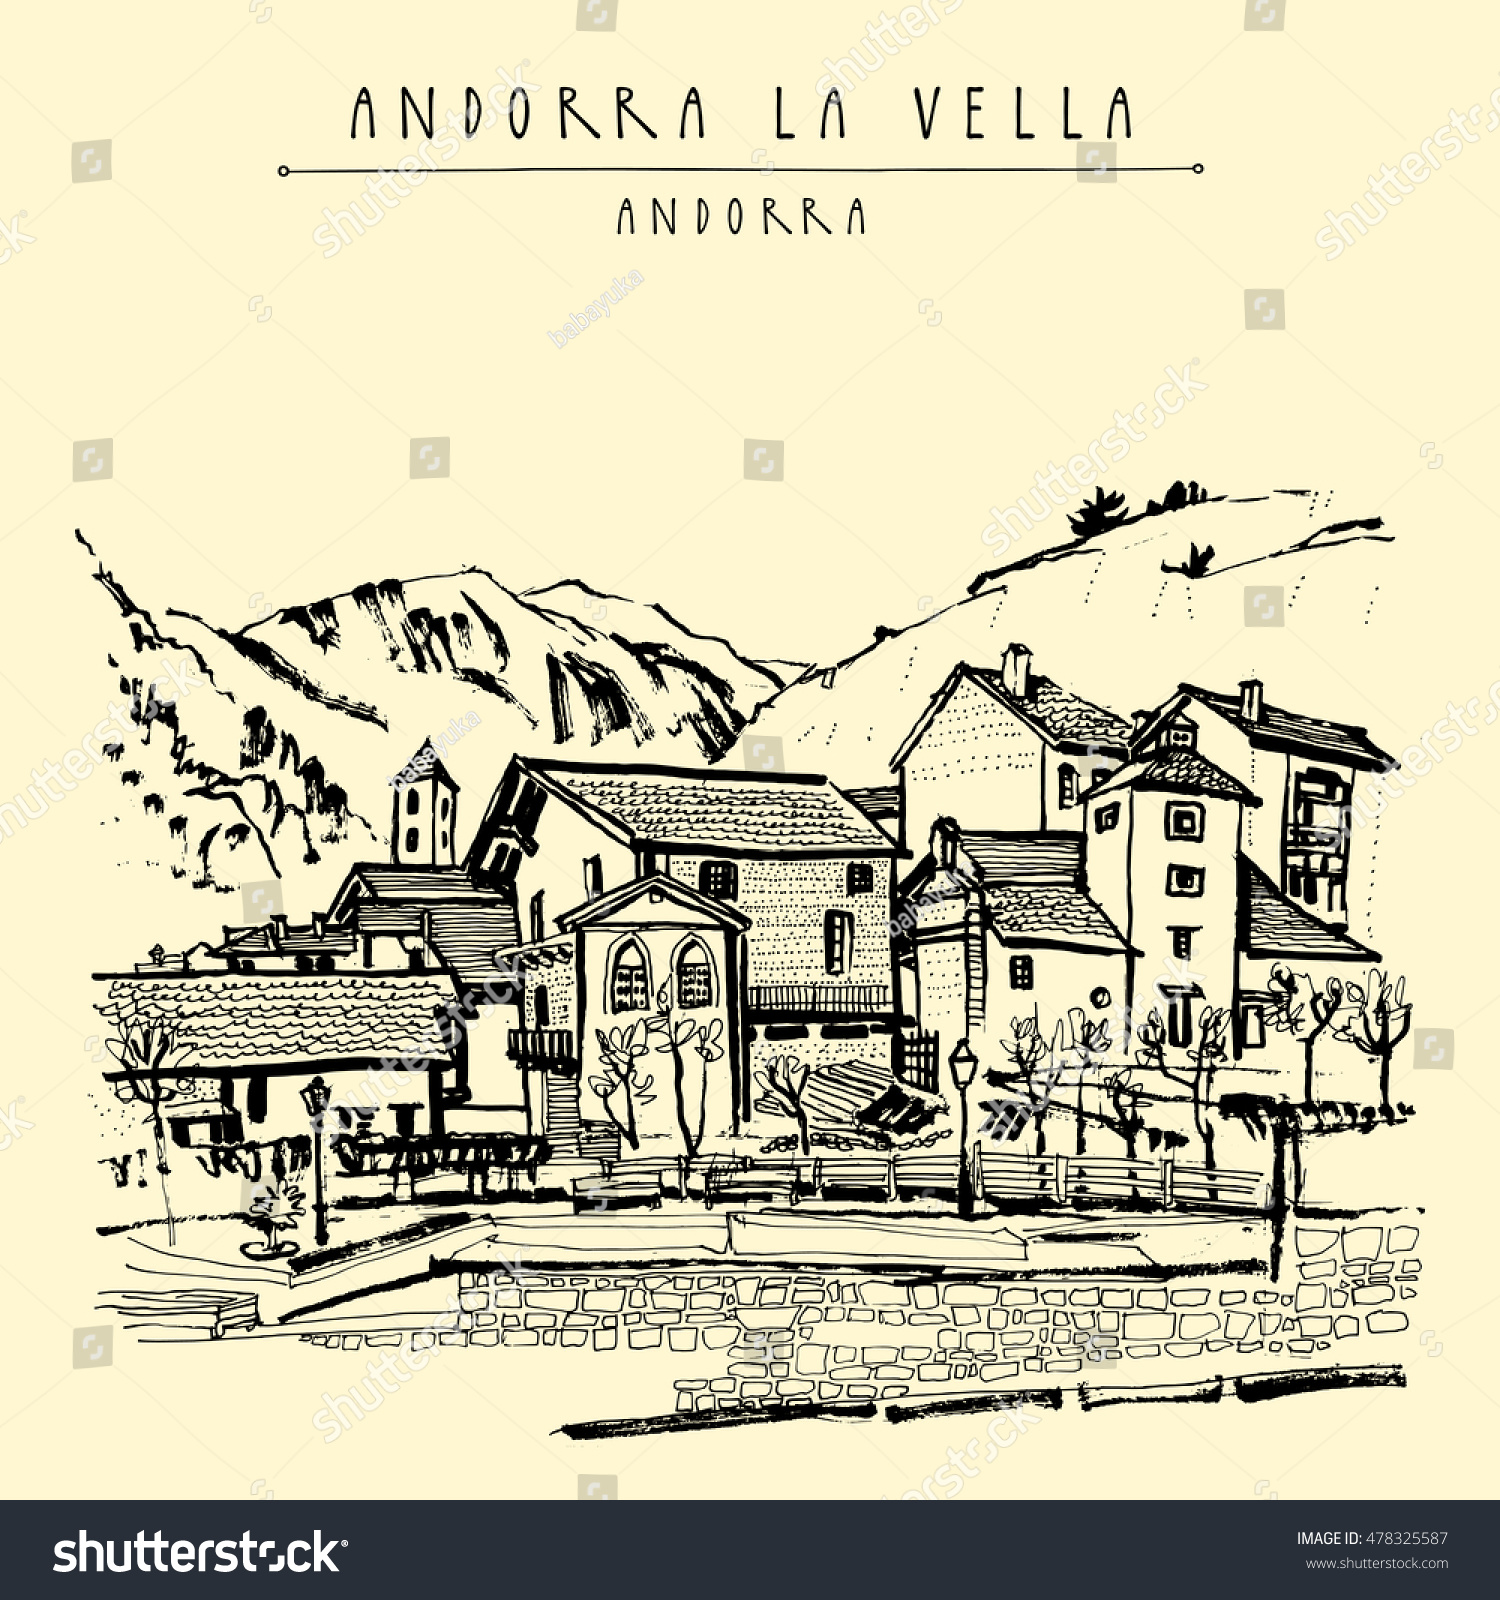 Andorra la vella capital andorra europe stock vector 478325587 andorra la vella capital of andorra europe cozy european town in pyrenees sciox Choice Image